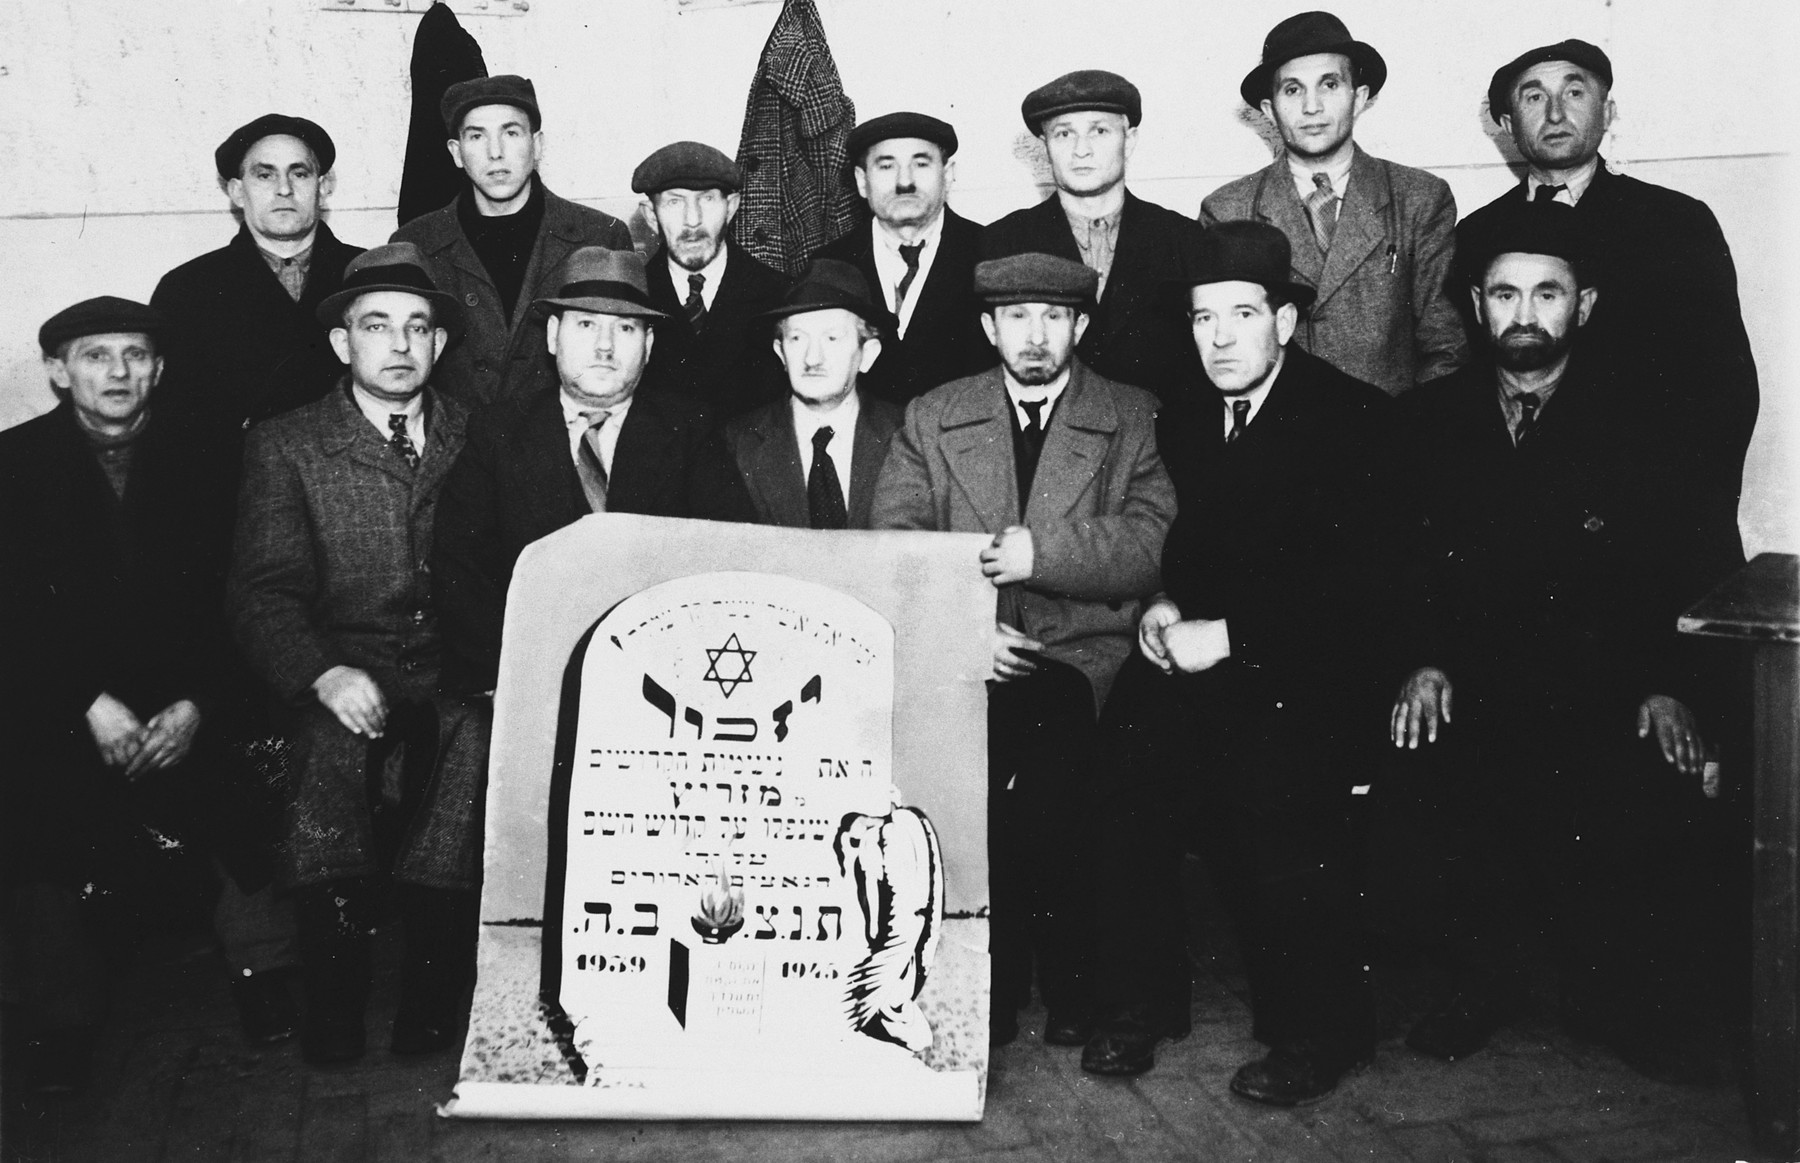 Jewish DPs gather around a memorial scroll designed to look like a  tombstone during a service to commemorate the Holocaust victims from Miedzyrzec Podlaski.  Among those pictured is Cantor Pinchos Rabinowitz who officiated at the service.